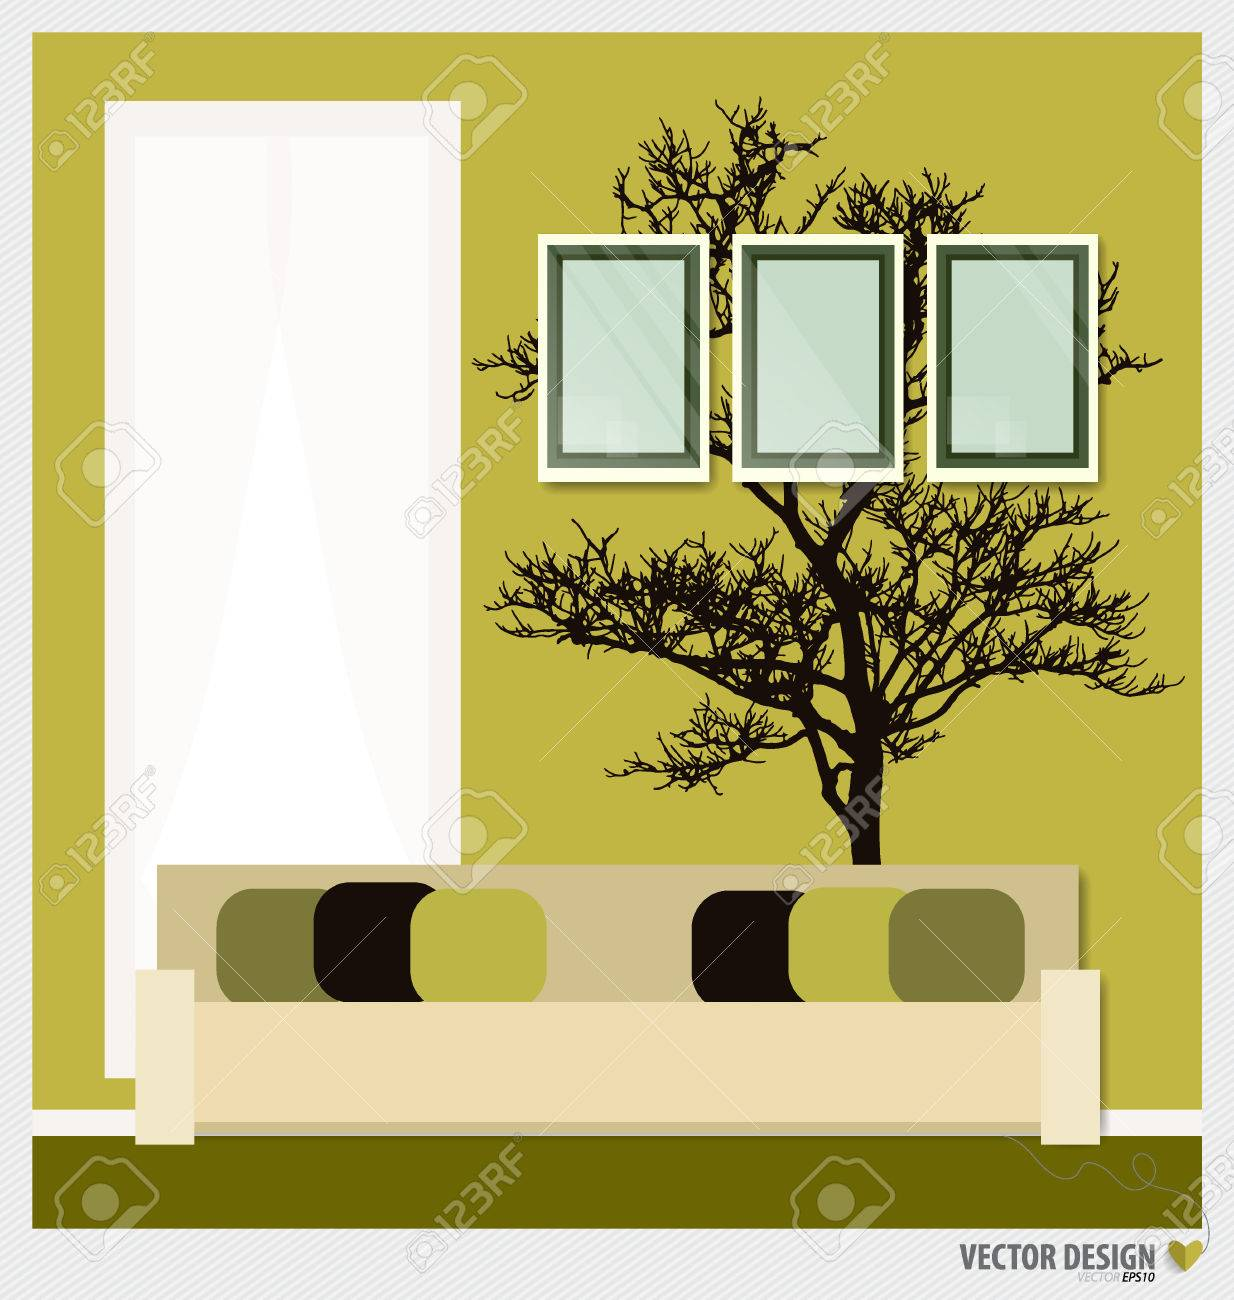 Three Empty Frames On A Wall And Decorative Wall Stickers For ...